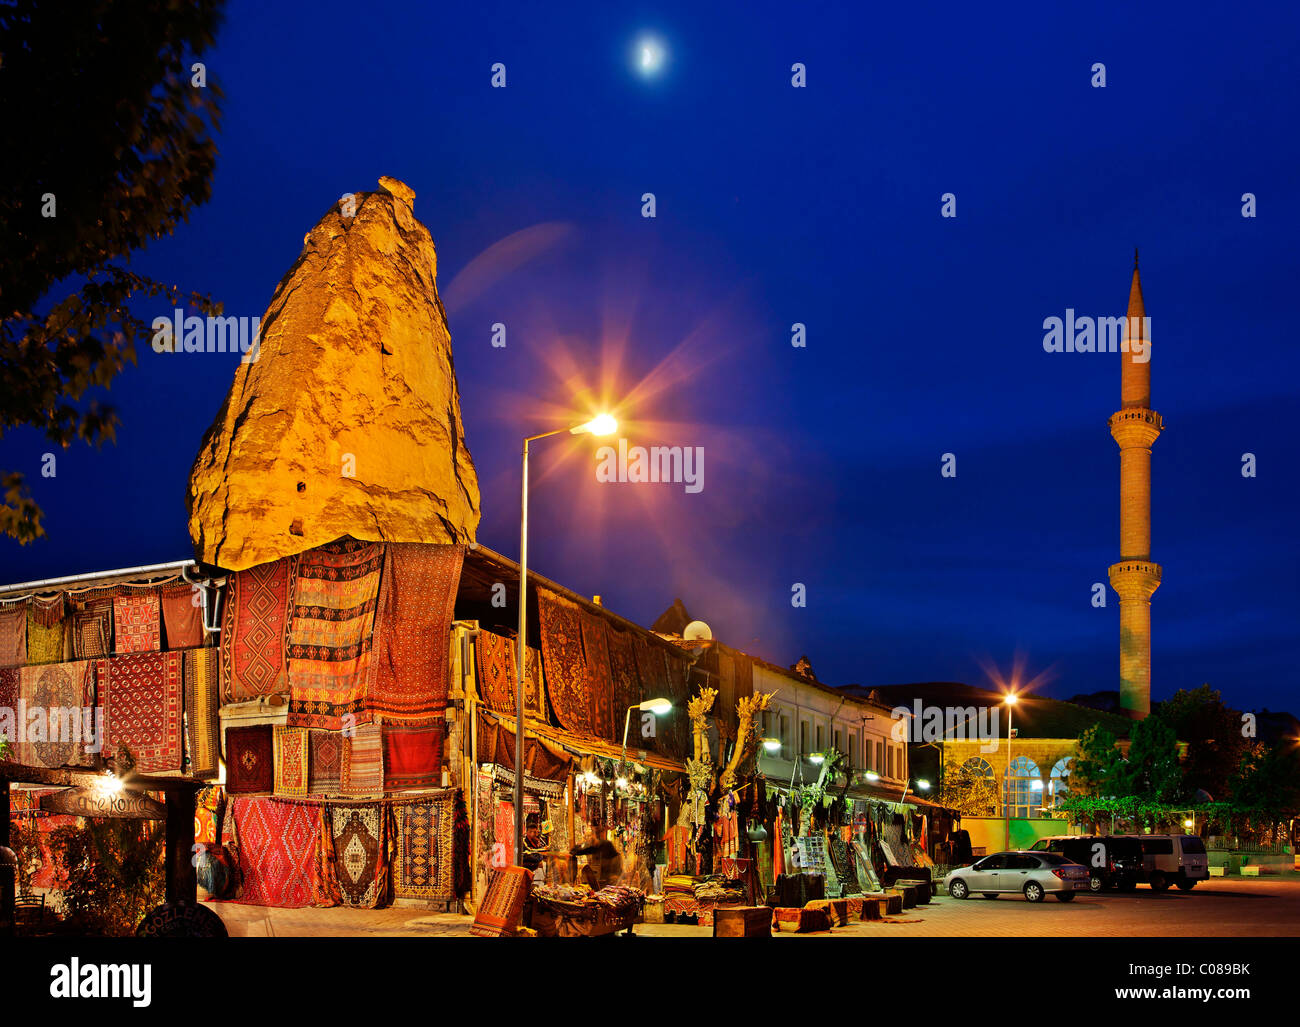 Goreme village in the heart of Cappadocia, in the 'blue' hour. Nevsehir, Anatolia, Turkey. - Stock Image